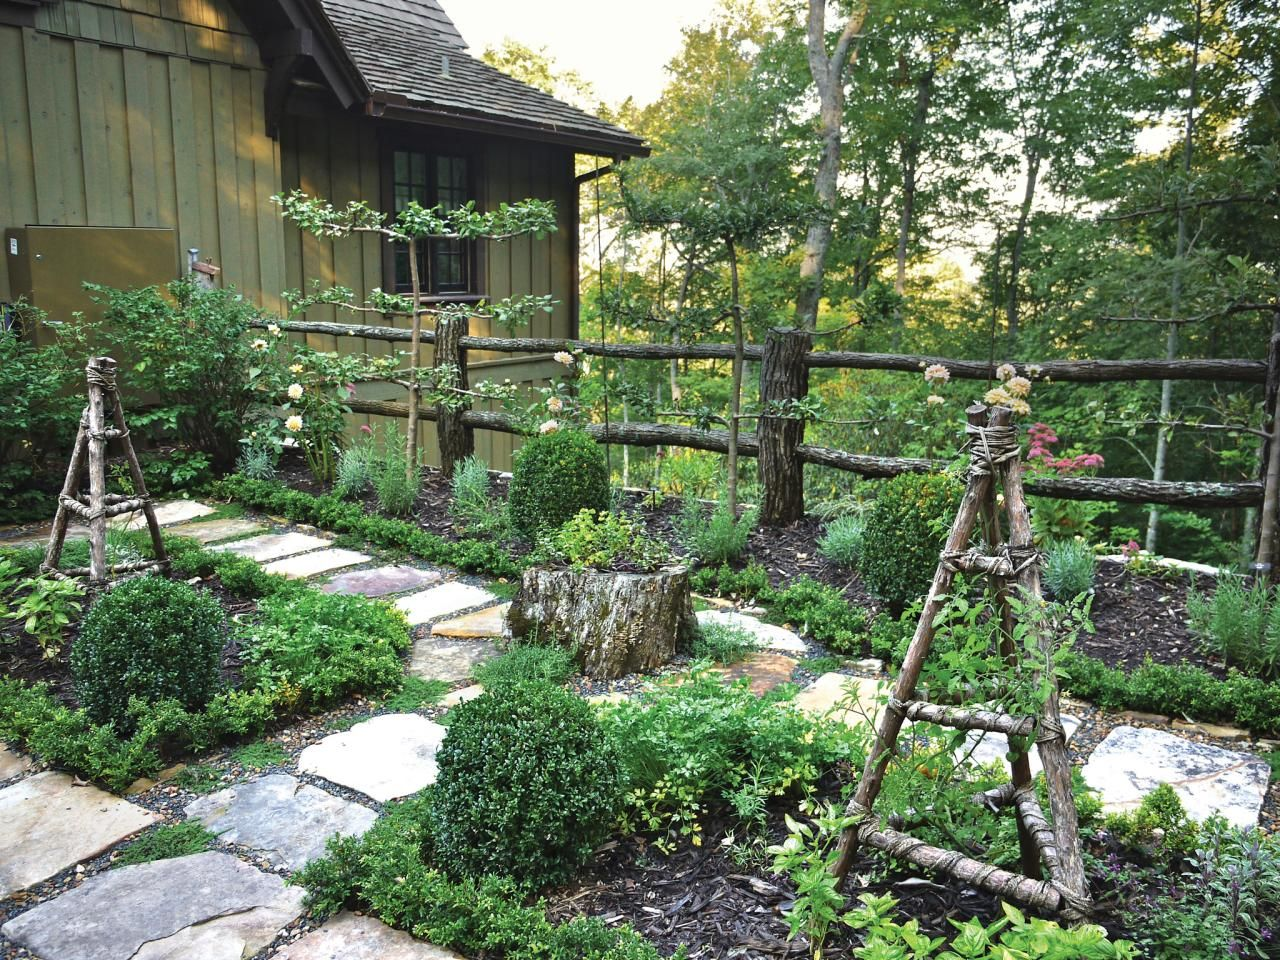 Step Out Into This Picturesque Petite Kitchen Garden And Find All The Herbs You Need For